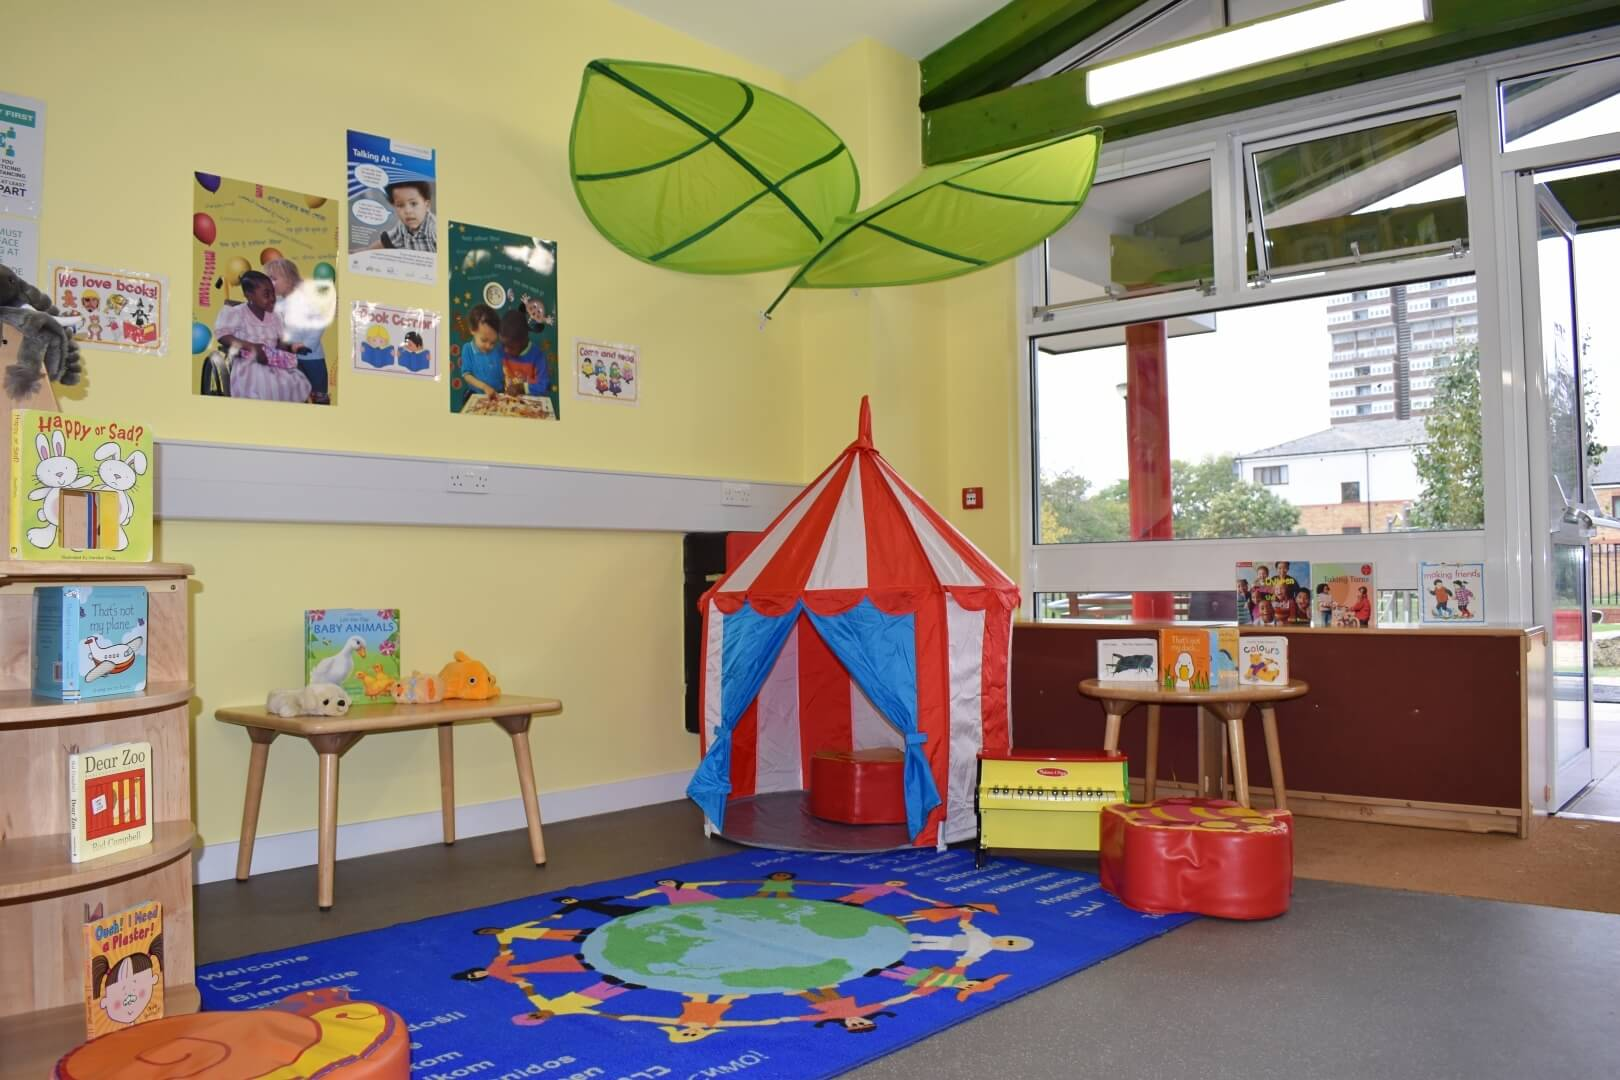 Rays Playhouse Childrens Centre Sands End Fulham (34)